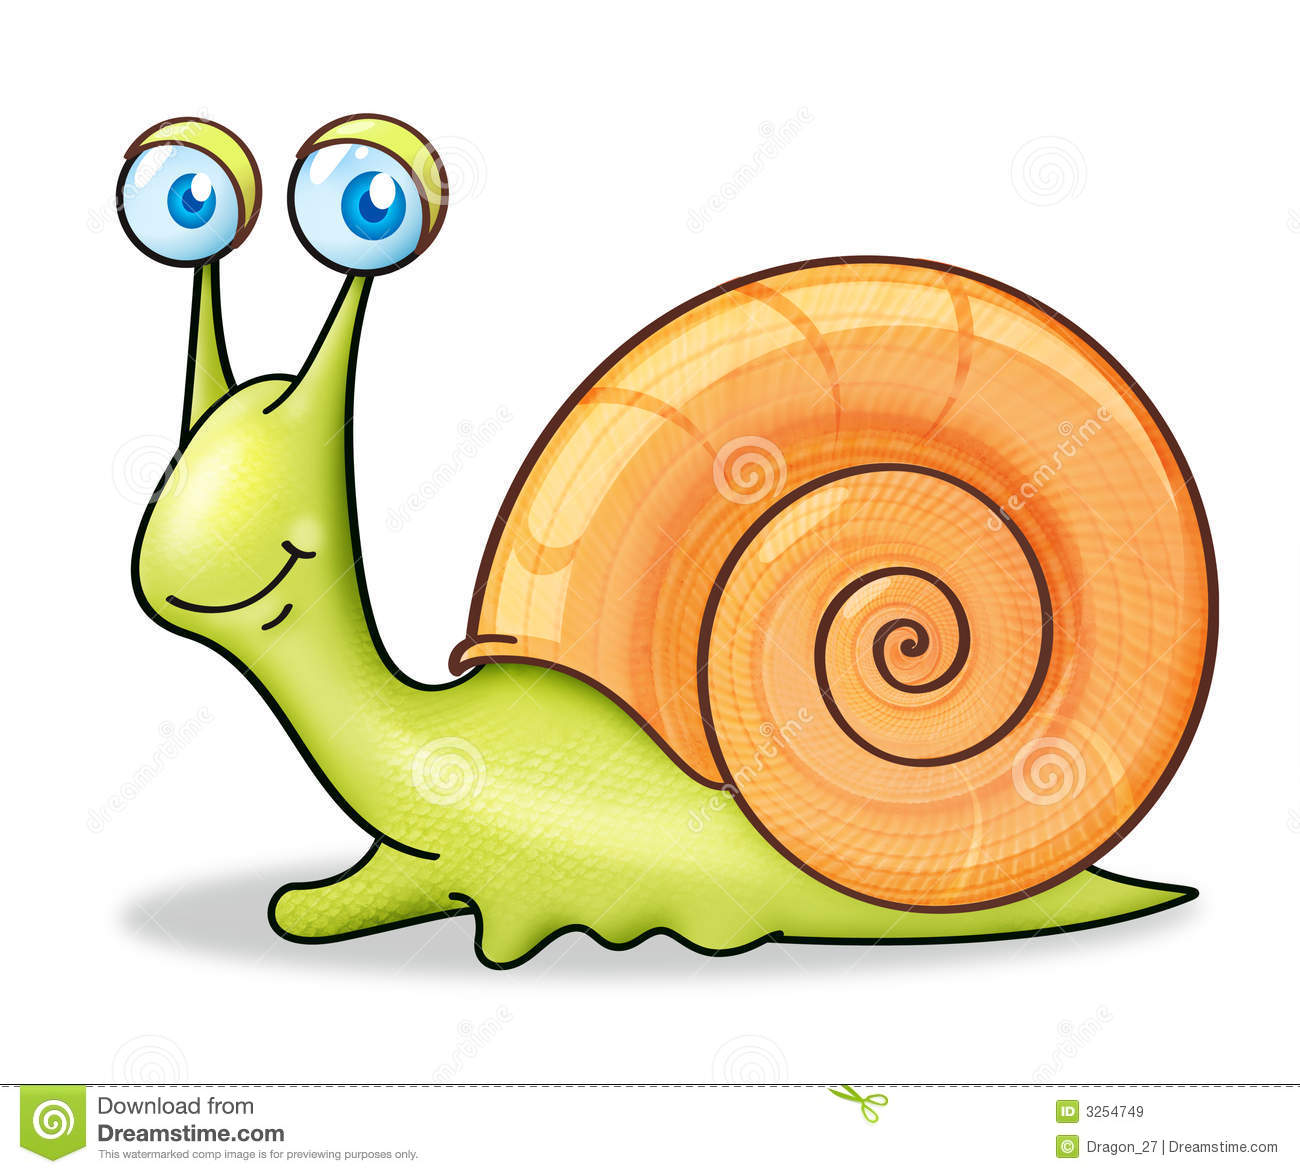 Mollusc clipart cartoon Art Clip pw Cartoon Clip